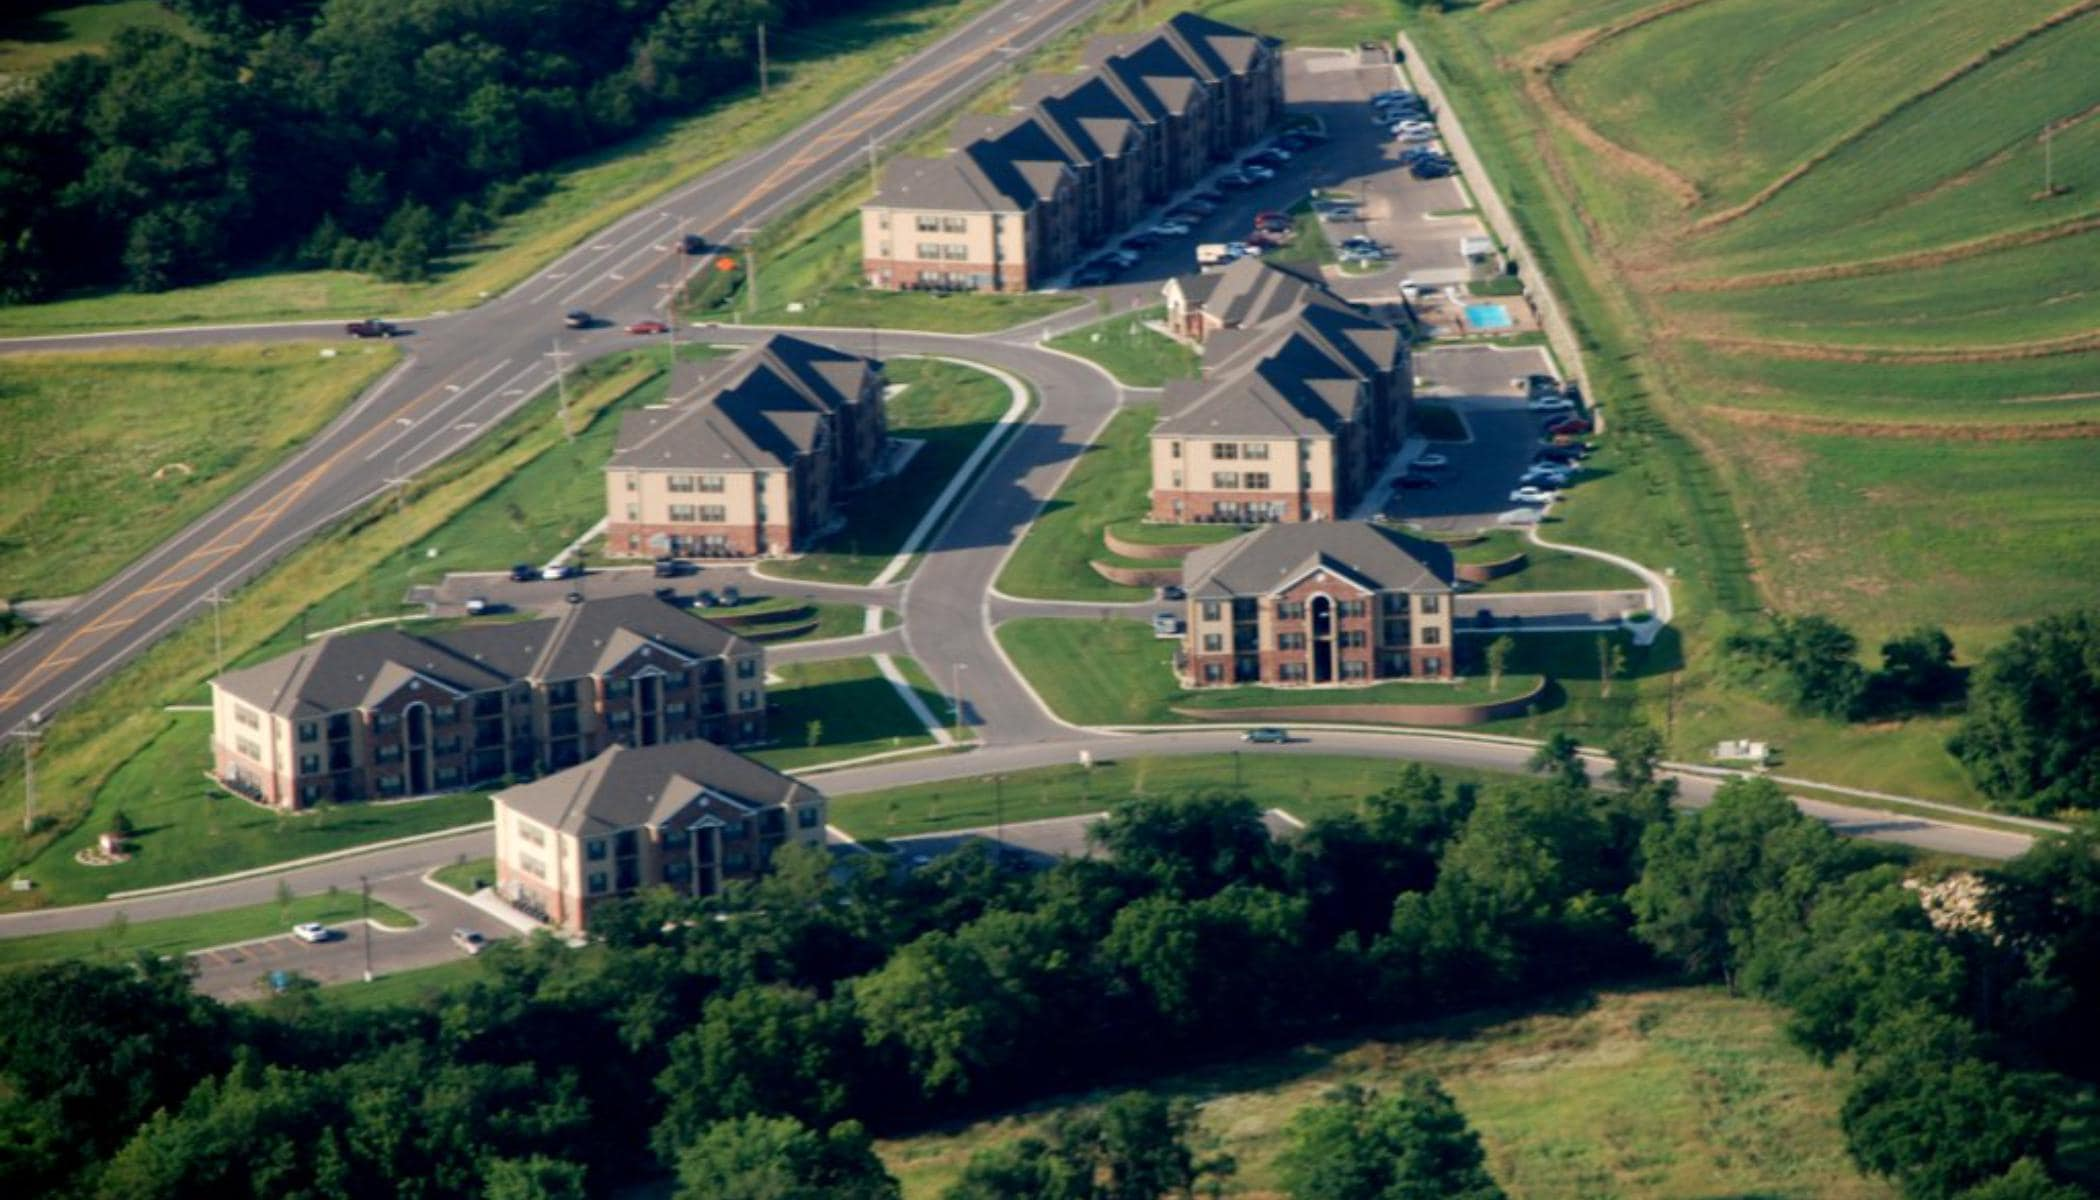 Aerial view of Highland Ridge Apartments in Manhattan, KS